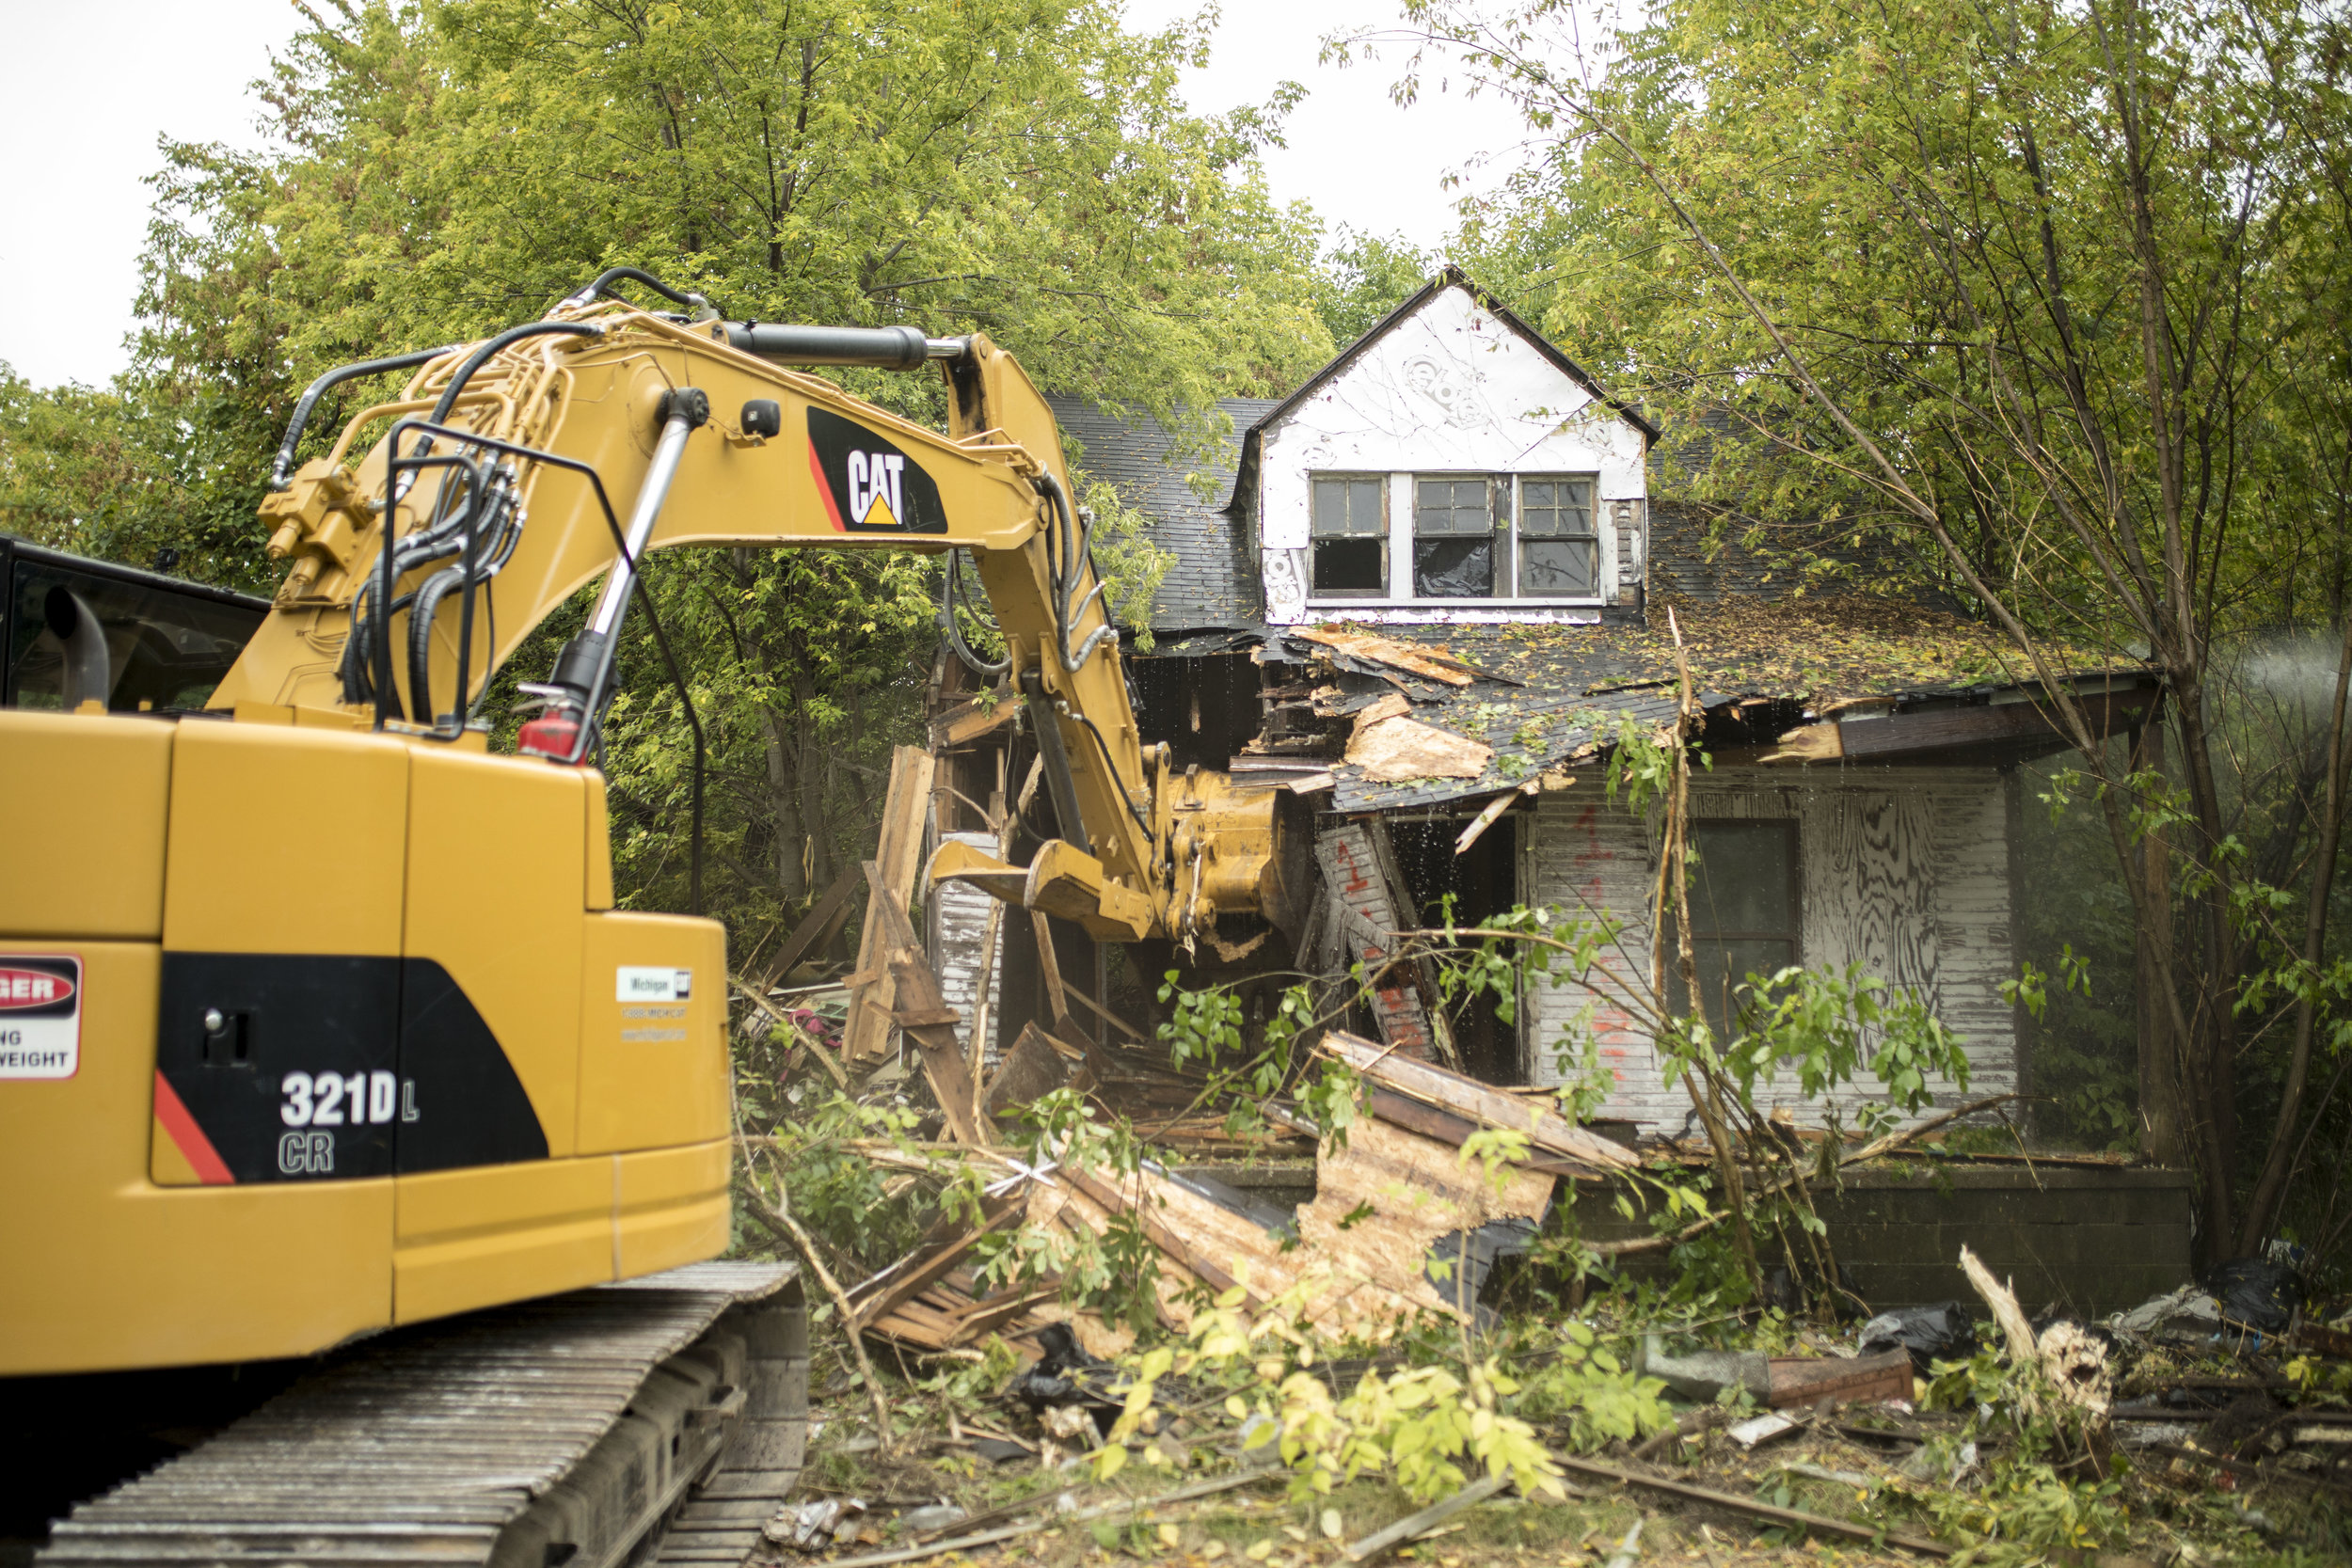 DEMOLITION - Commercial, residential, and emergency work